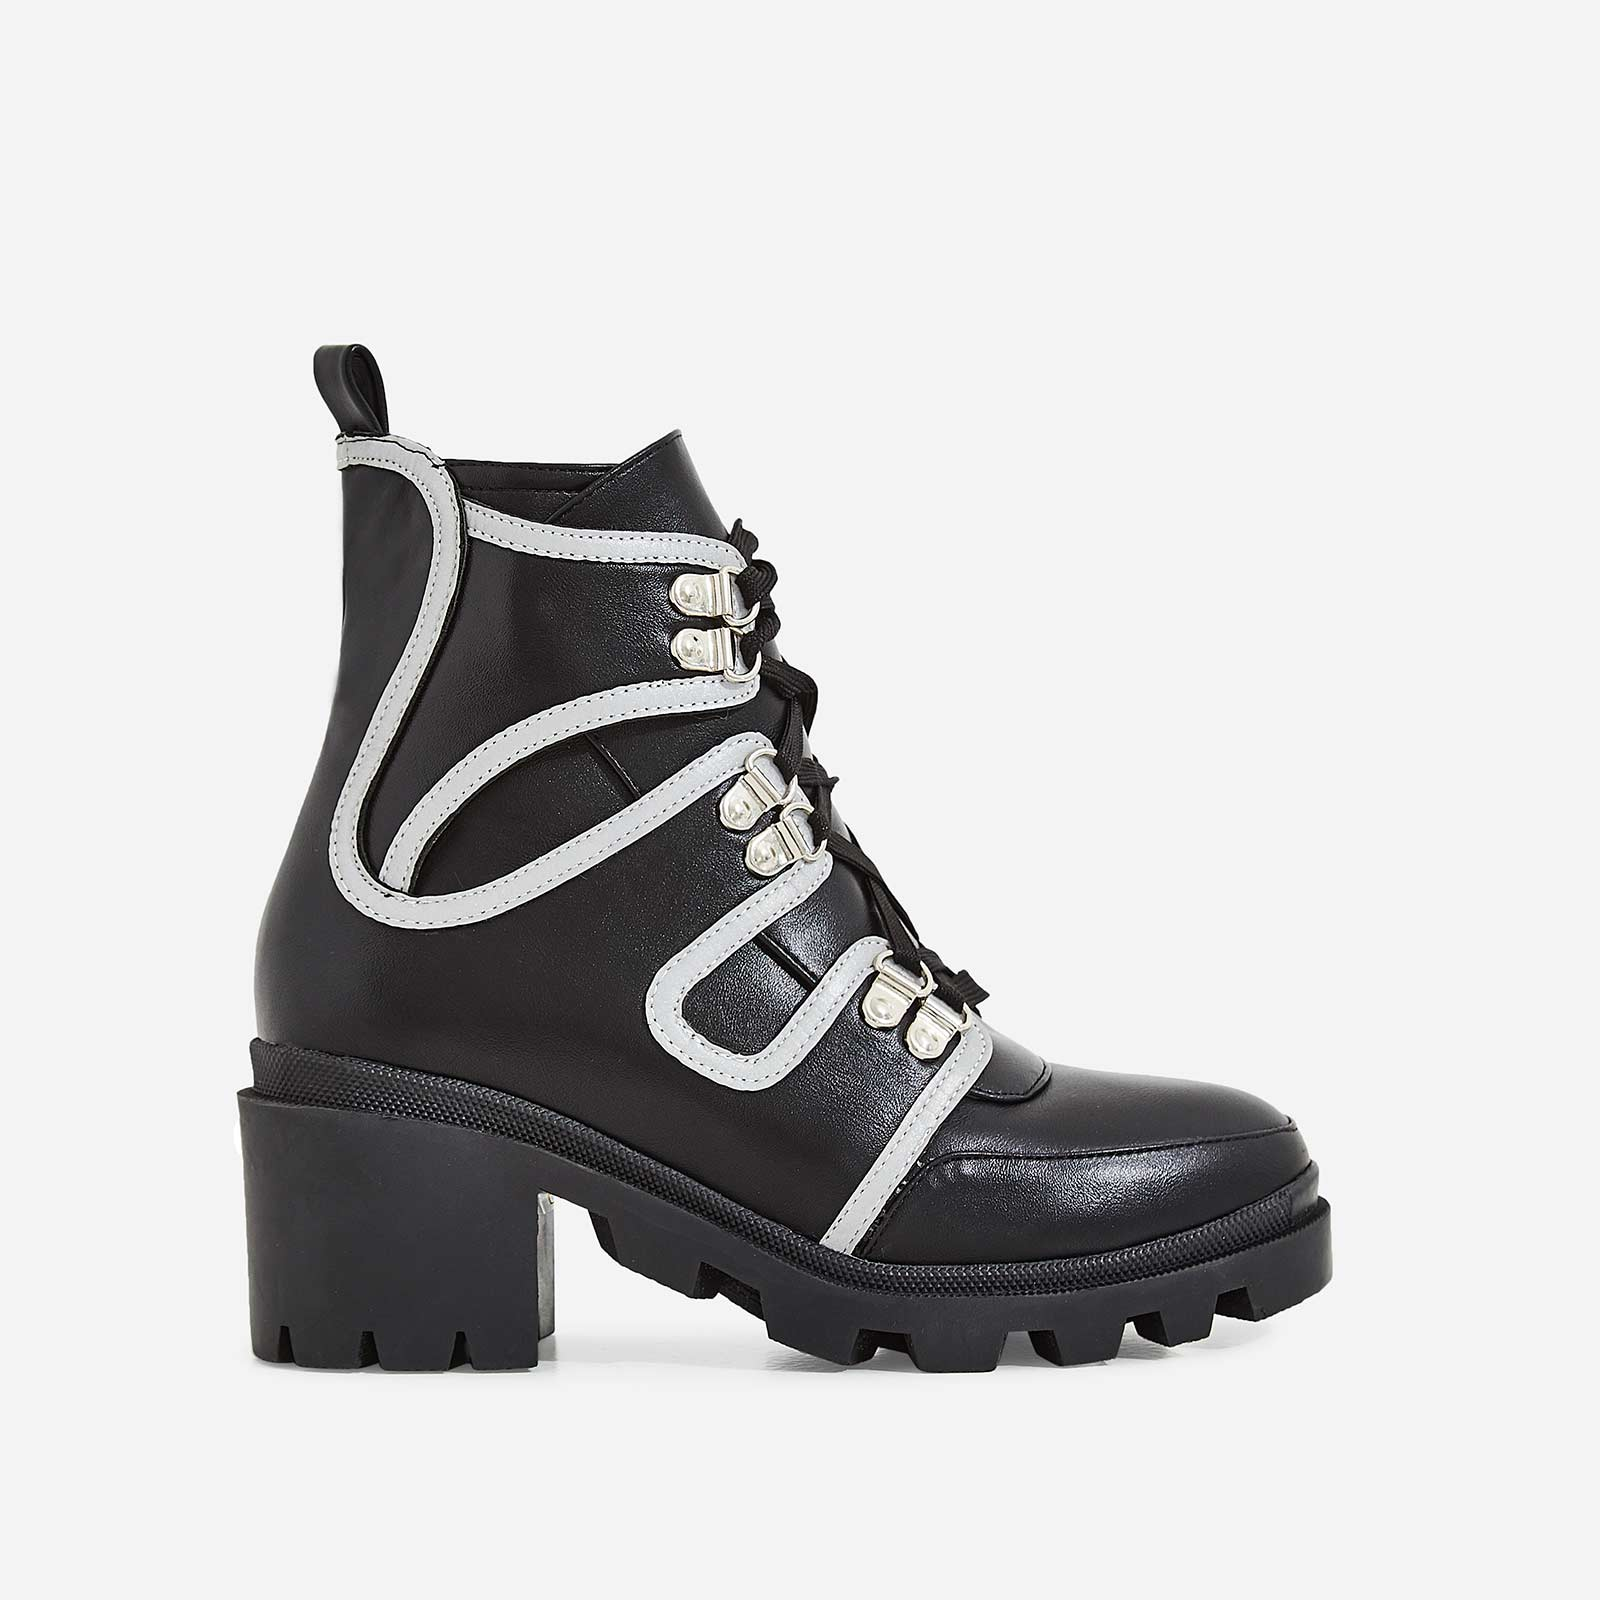 Ellis Lace Up Reflective Trim Ankle Biker Boot In Black Faux Leather